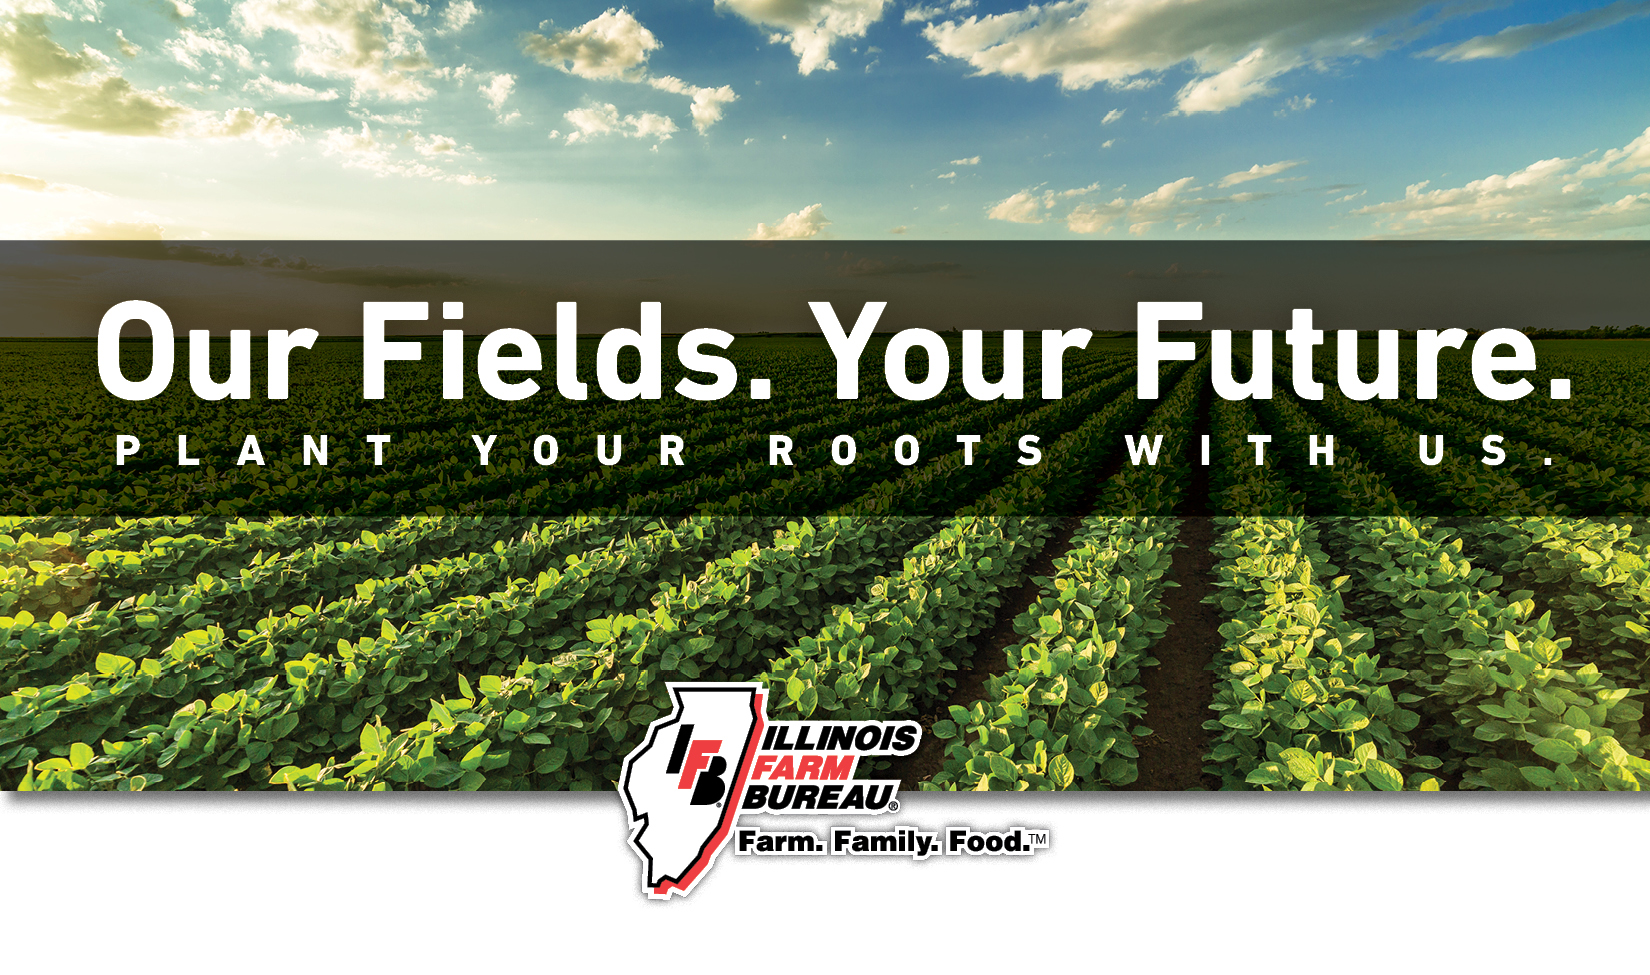 Our Fields. Your Future